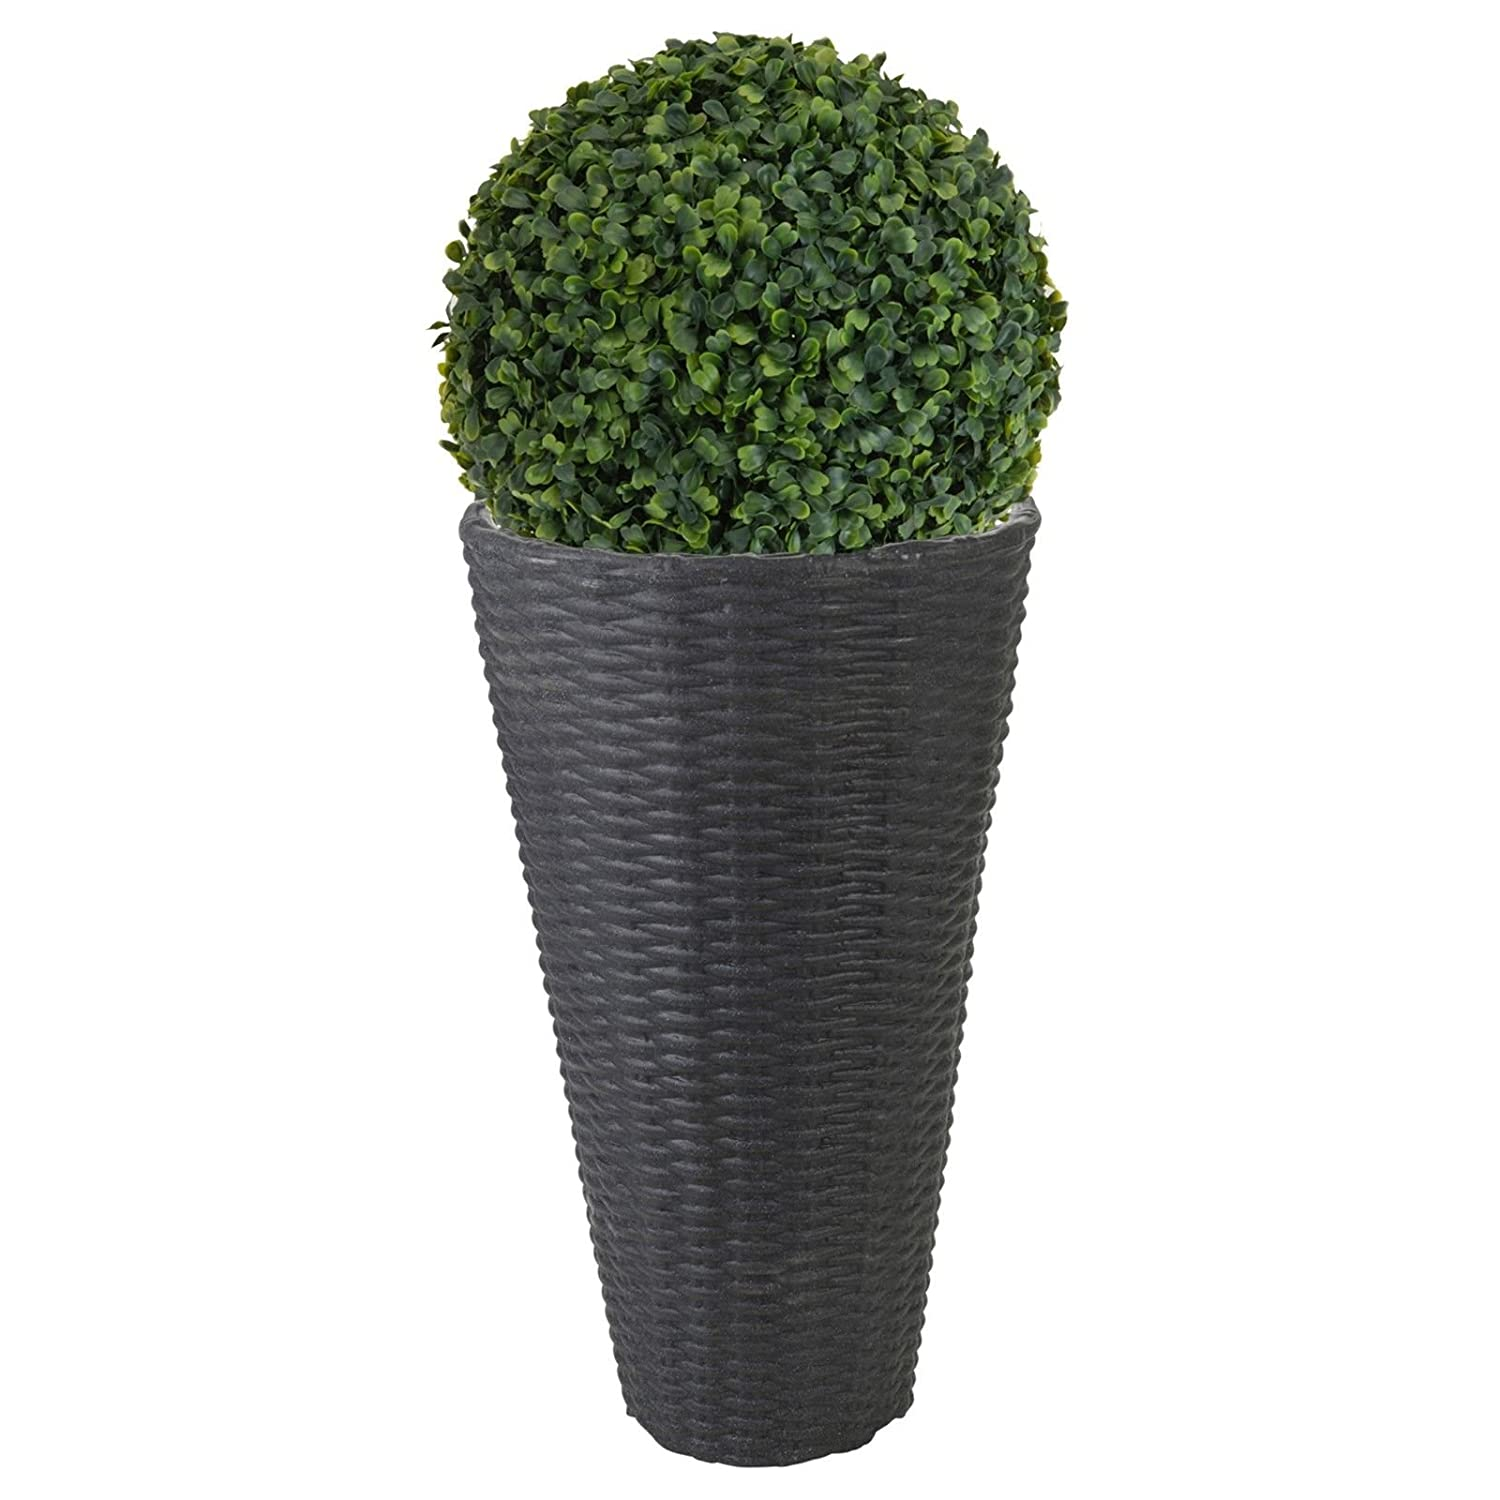 URBN Living Round Charcoal Grey Plant Pot With Artificial Grass Dome Ball EASYGIFT